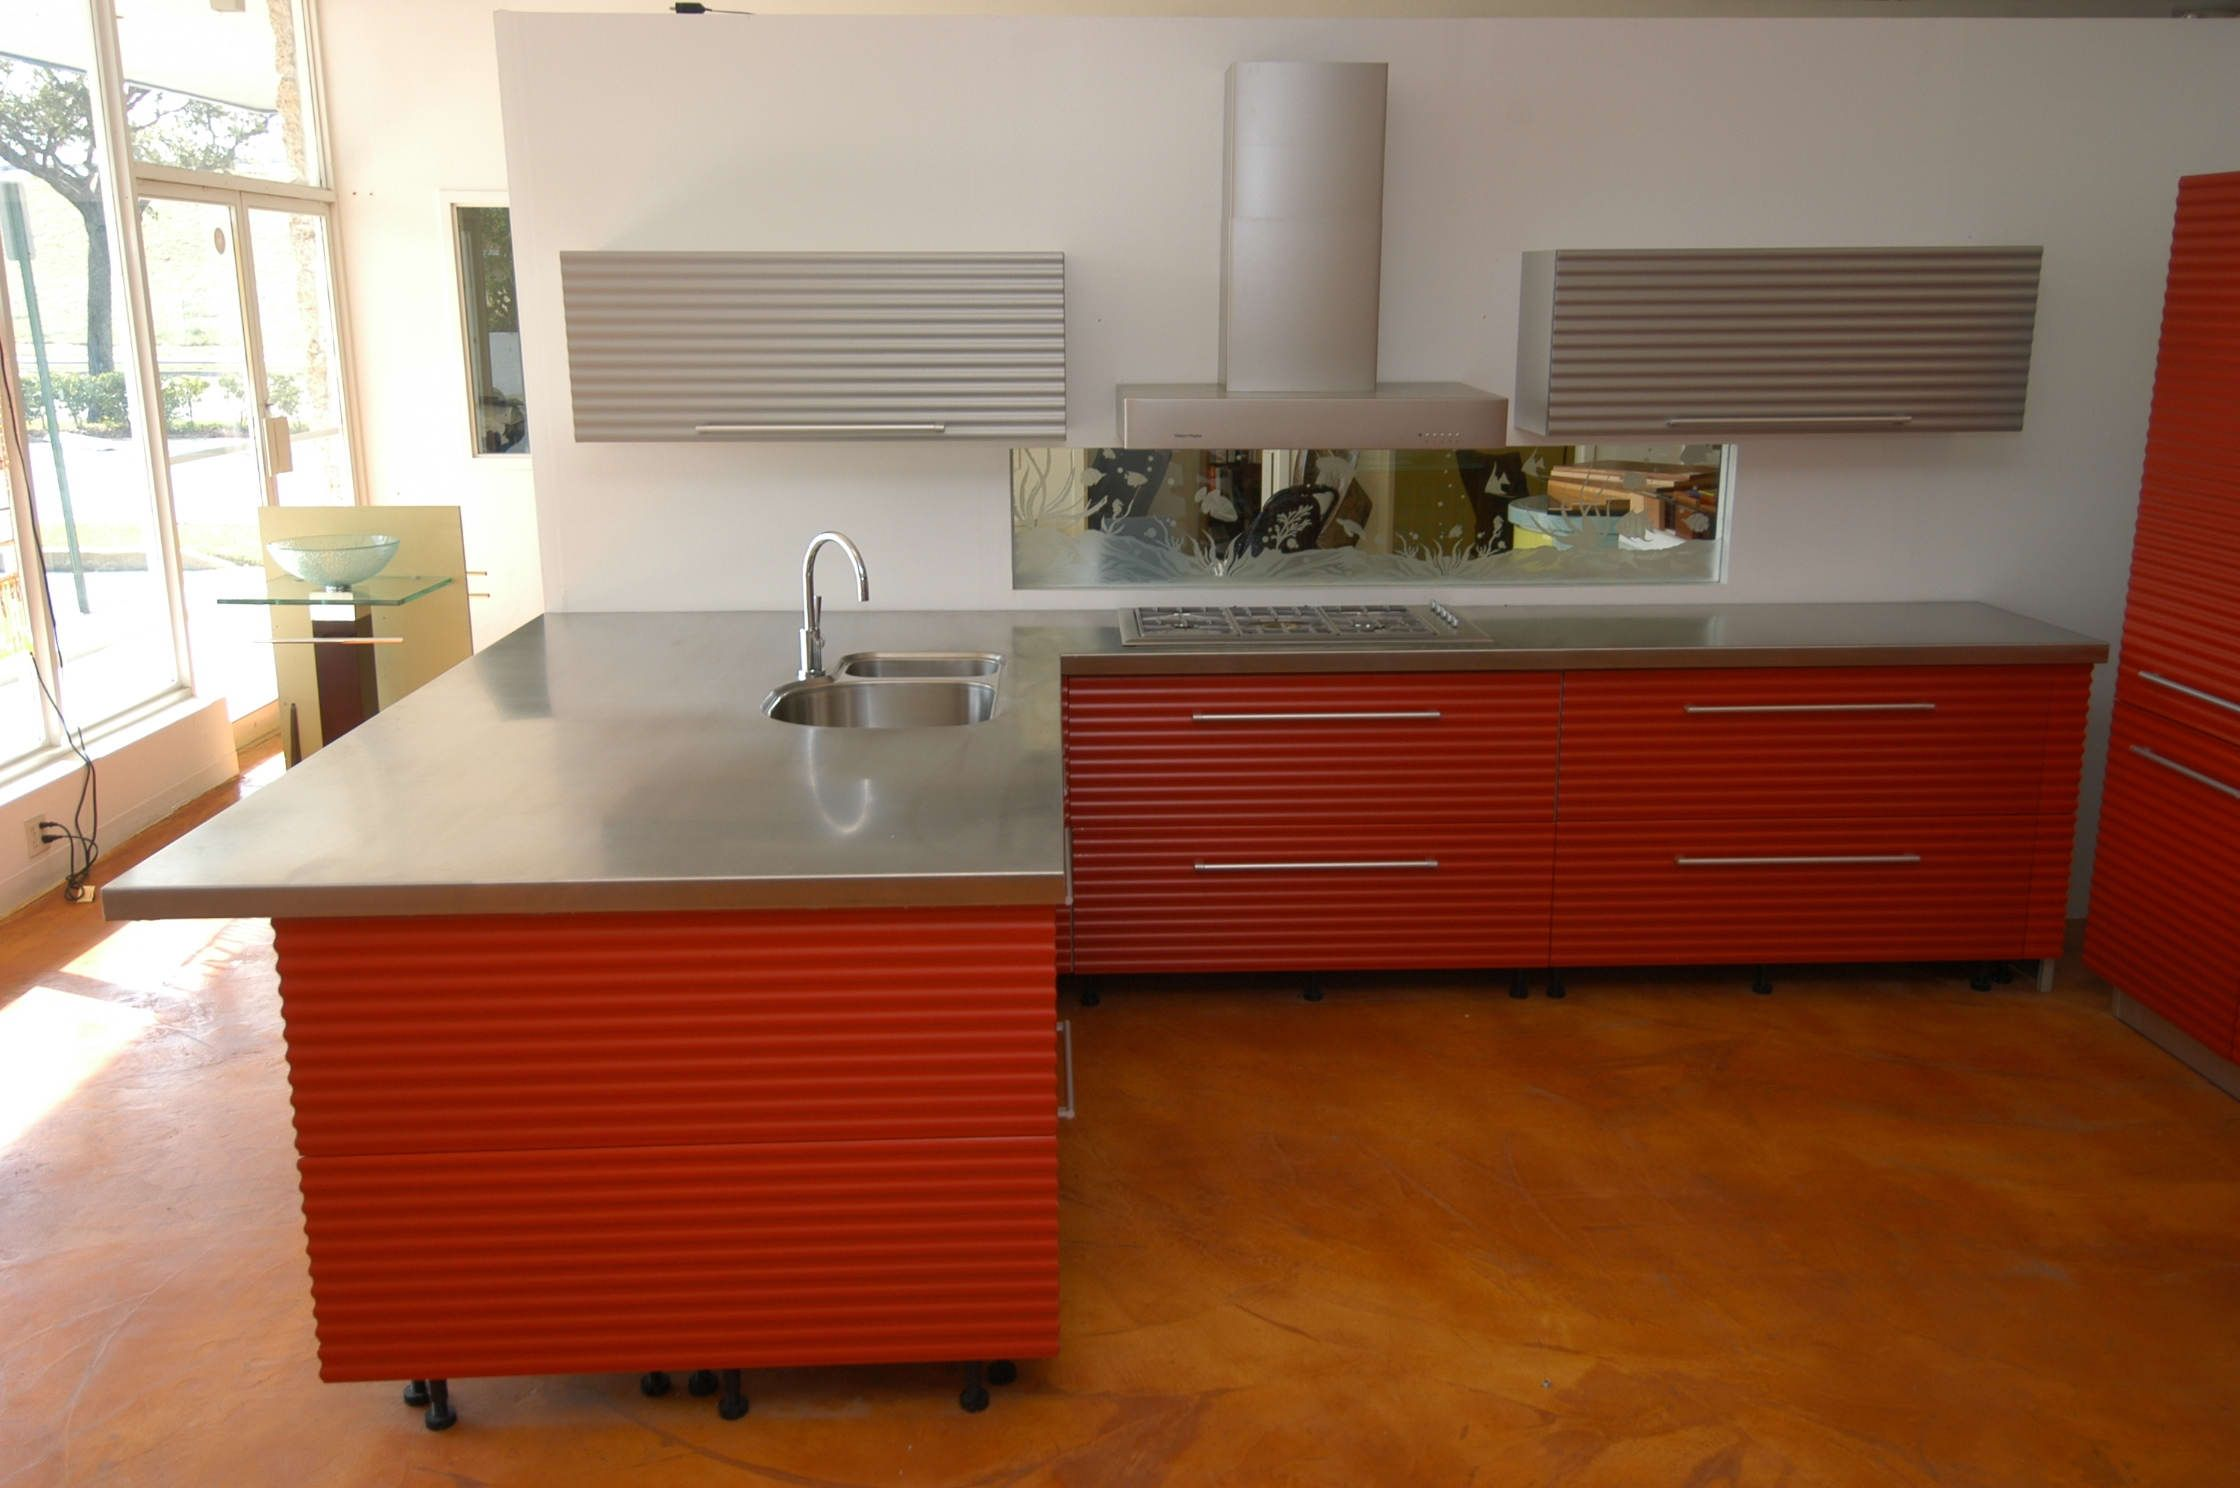 Image result for red brick countertops stainless steel